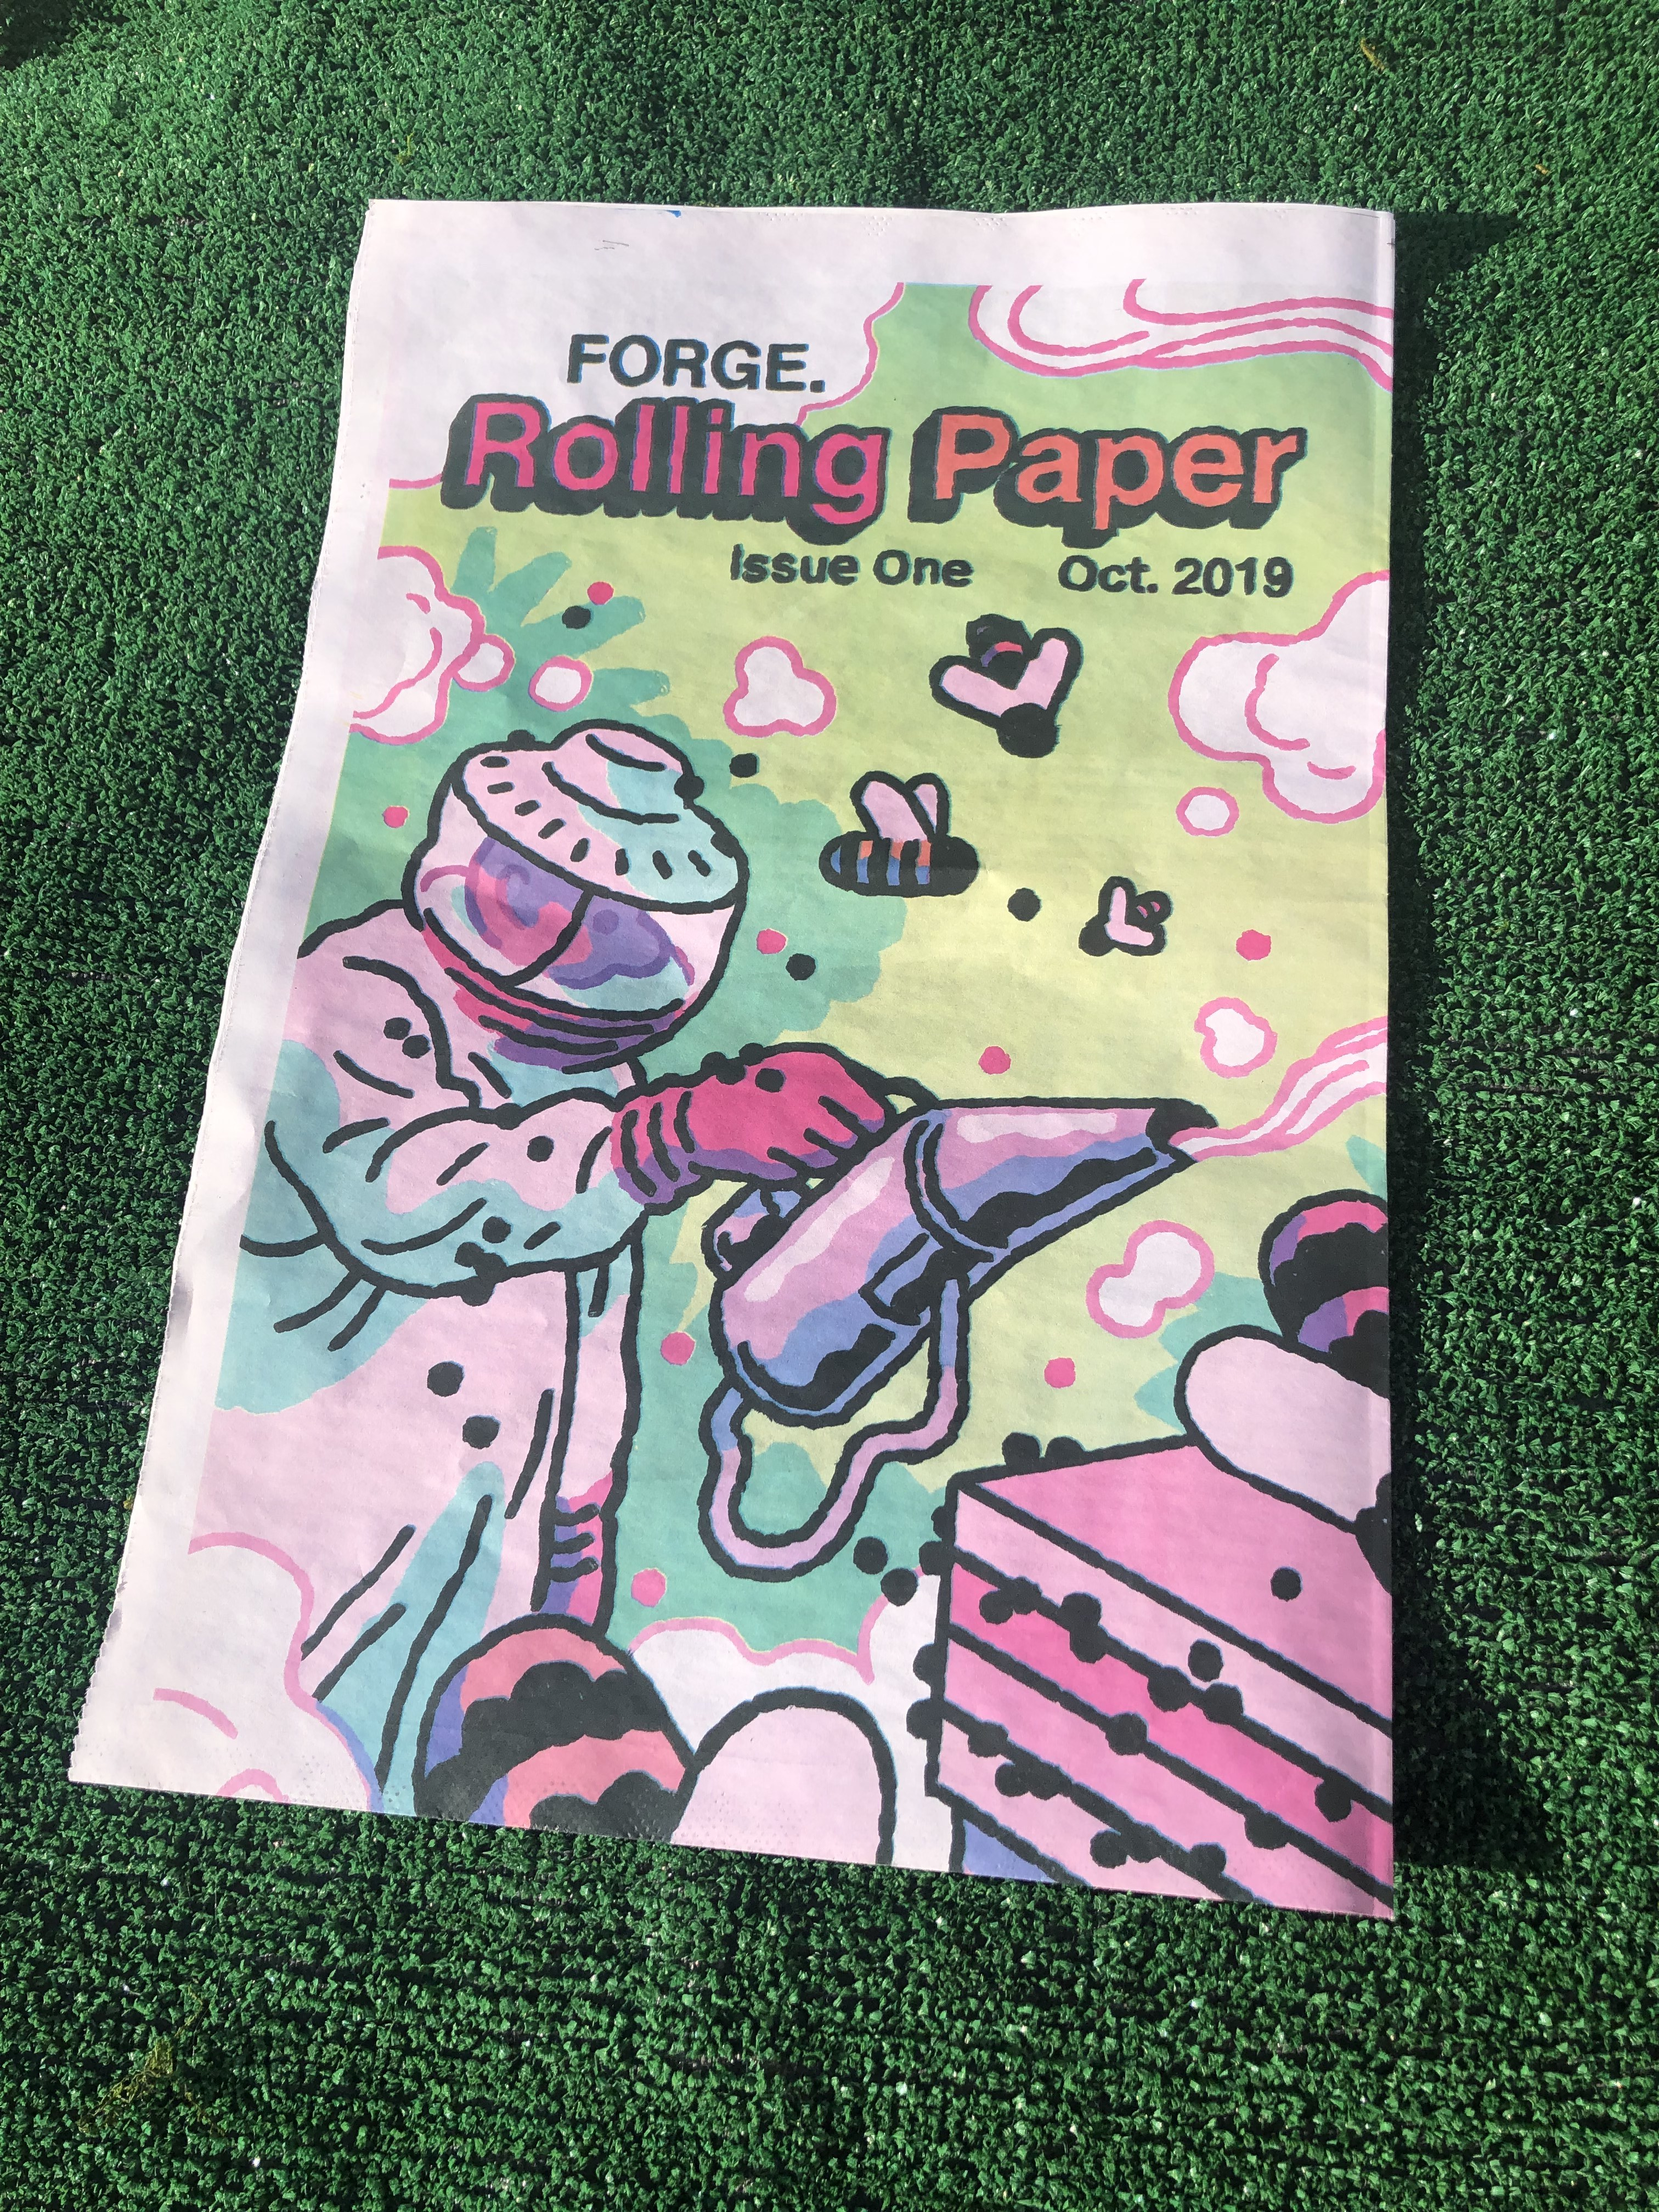 FORGE Rolling Paper Issue One (Two Copies)